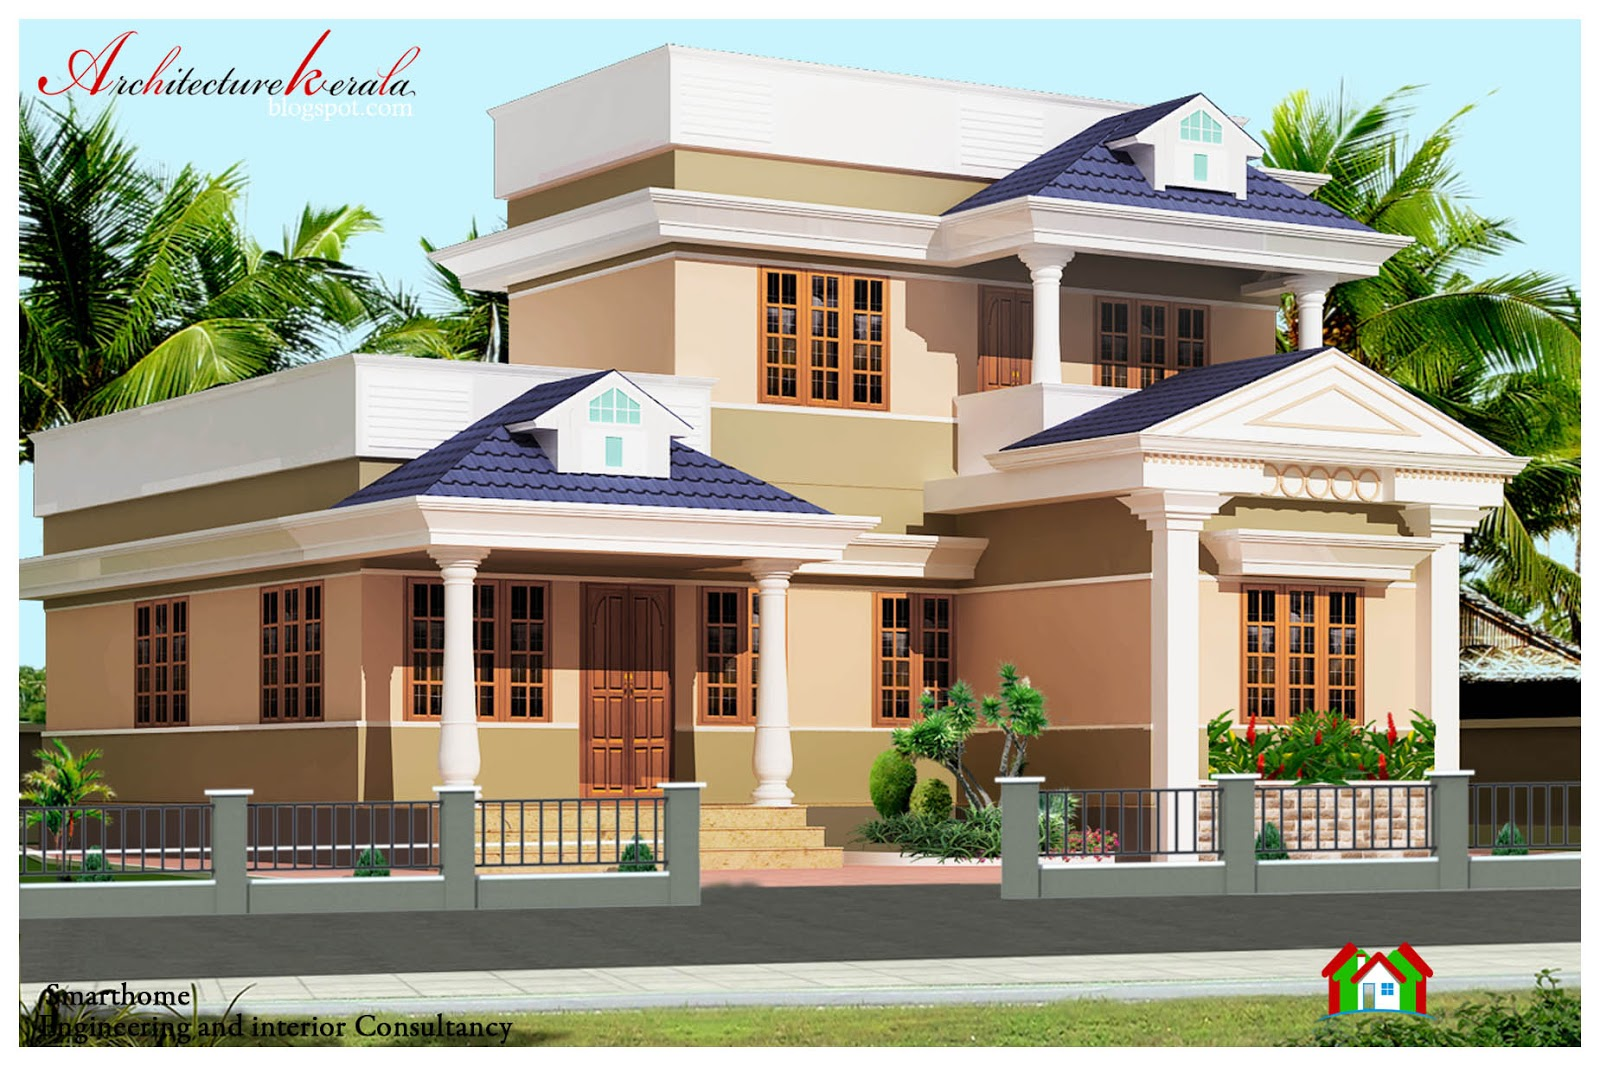 Architecture kerala 1000 sq ft kerala style house plan for Kerala home designs com